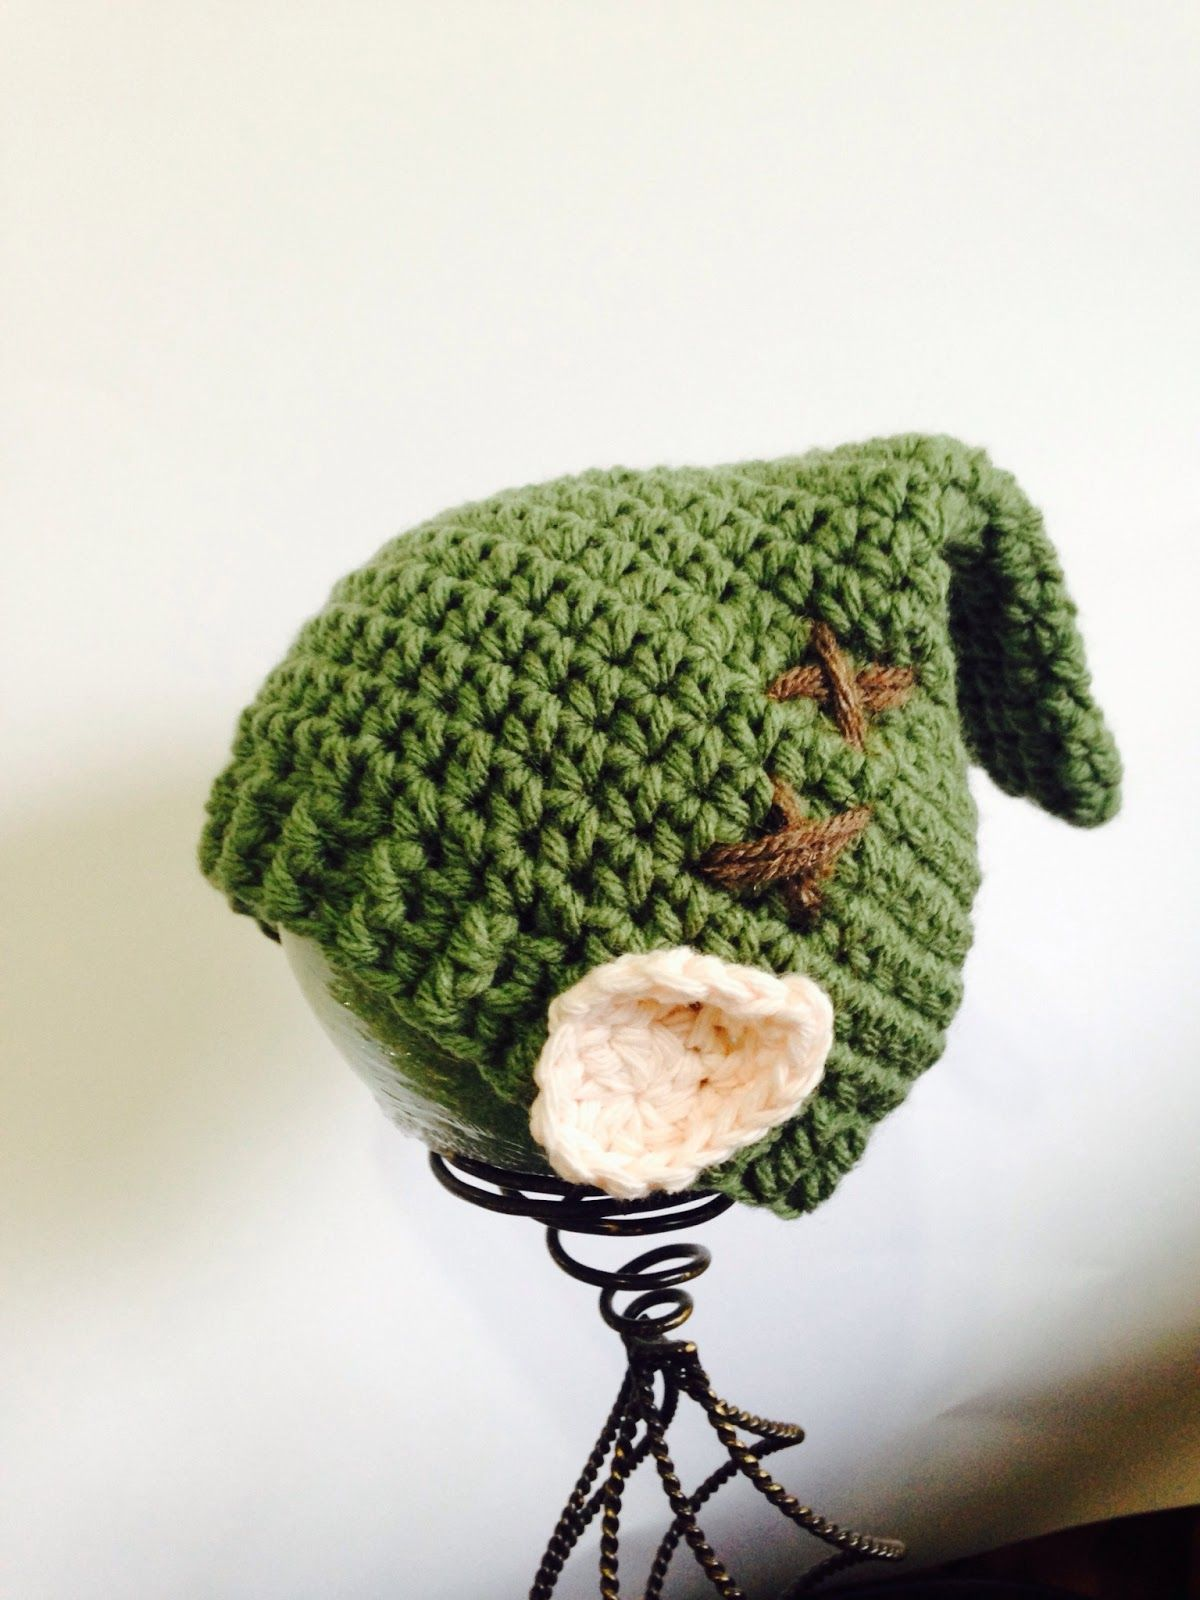 My Link hat was a hit and many people keep asking for the pattern ...